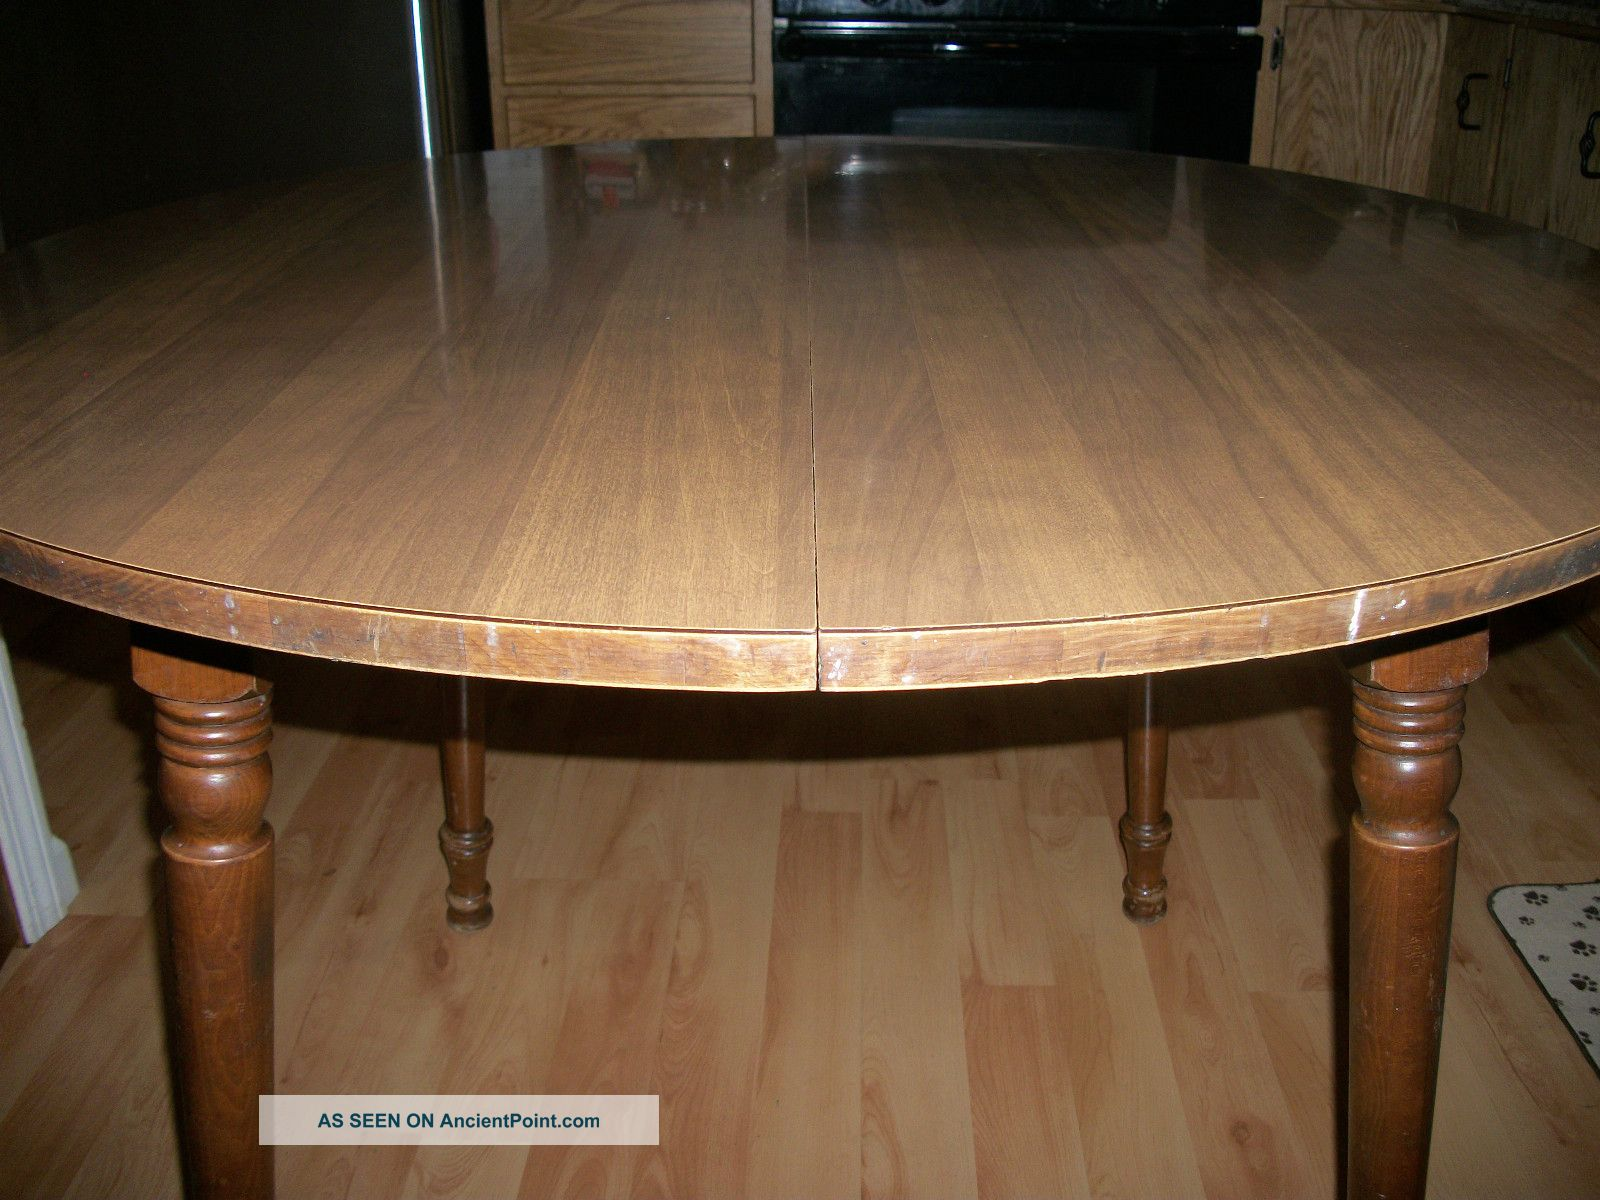 Rock Maple Tell City Chair Company Dining Table-ancientpoint.com